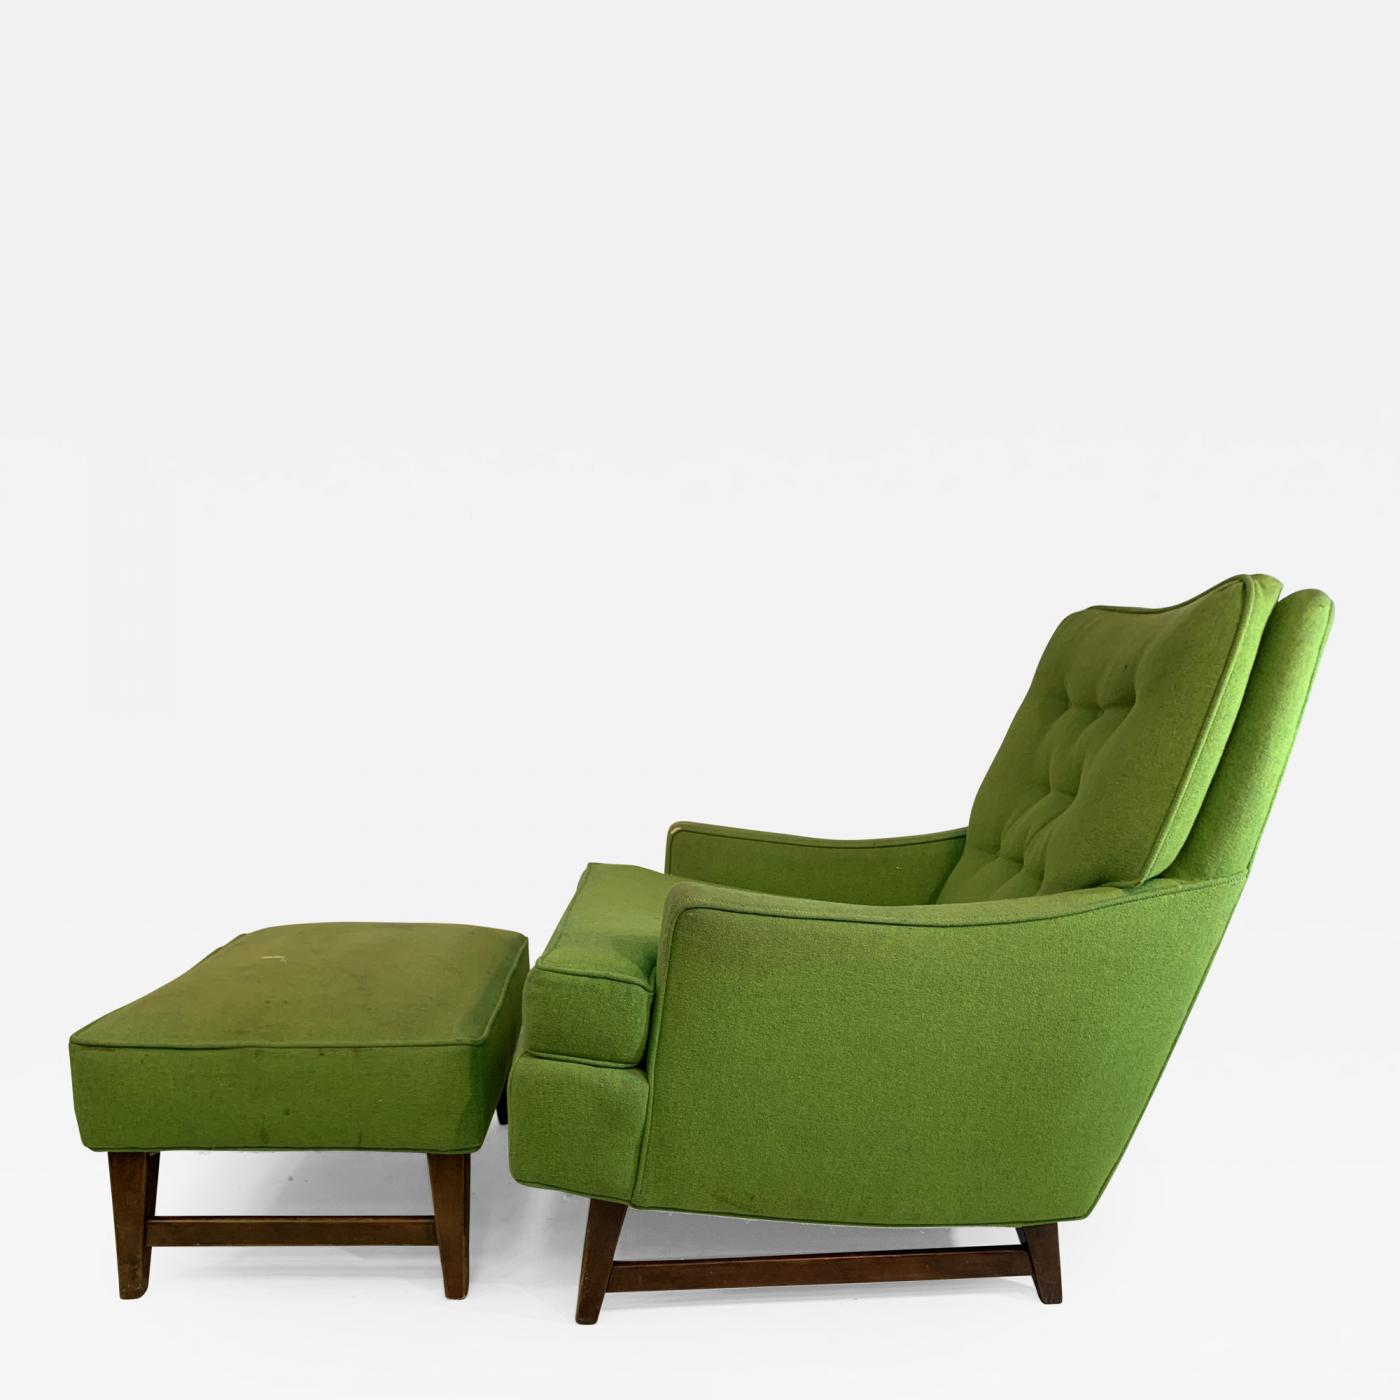 Amazing Mid Century Modern Club Chair And Ottoman Gamerscity Chair Design For Home Gamerscityorg